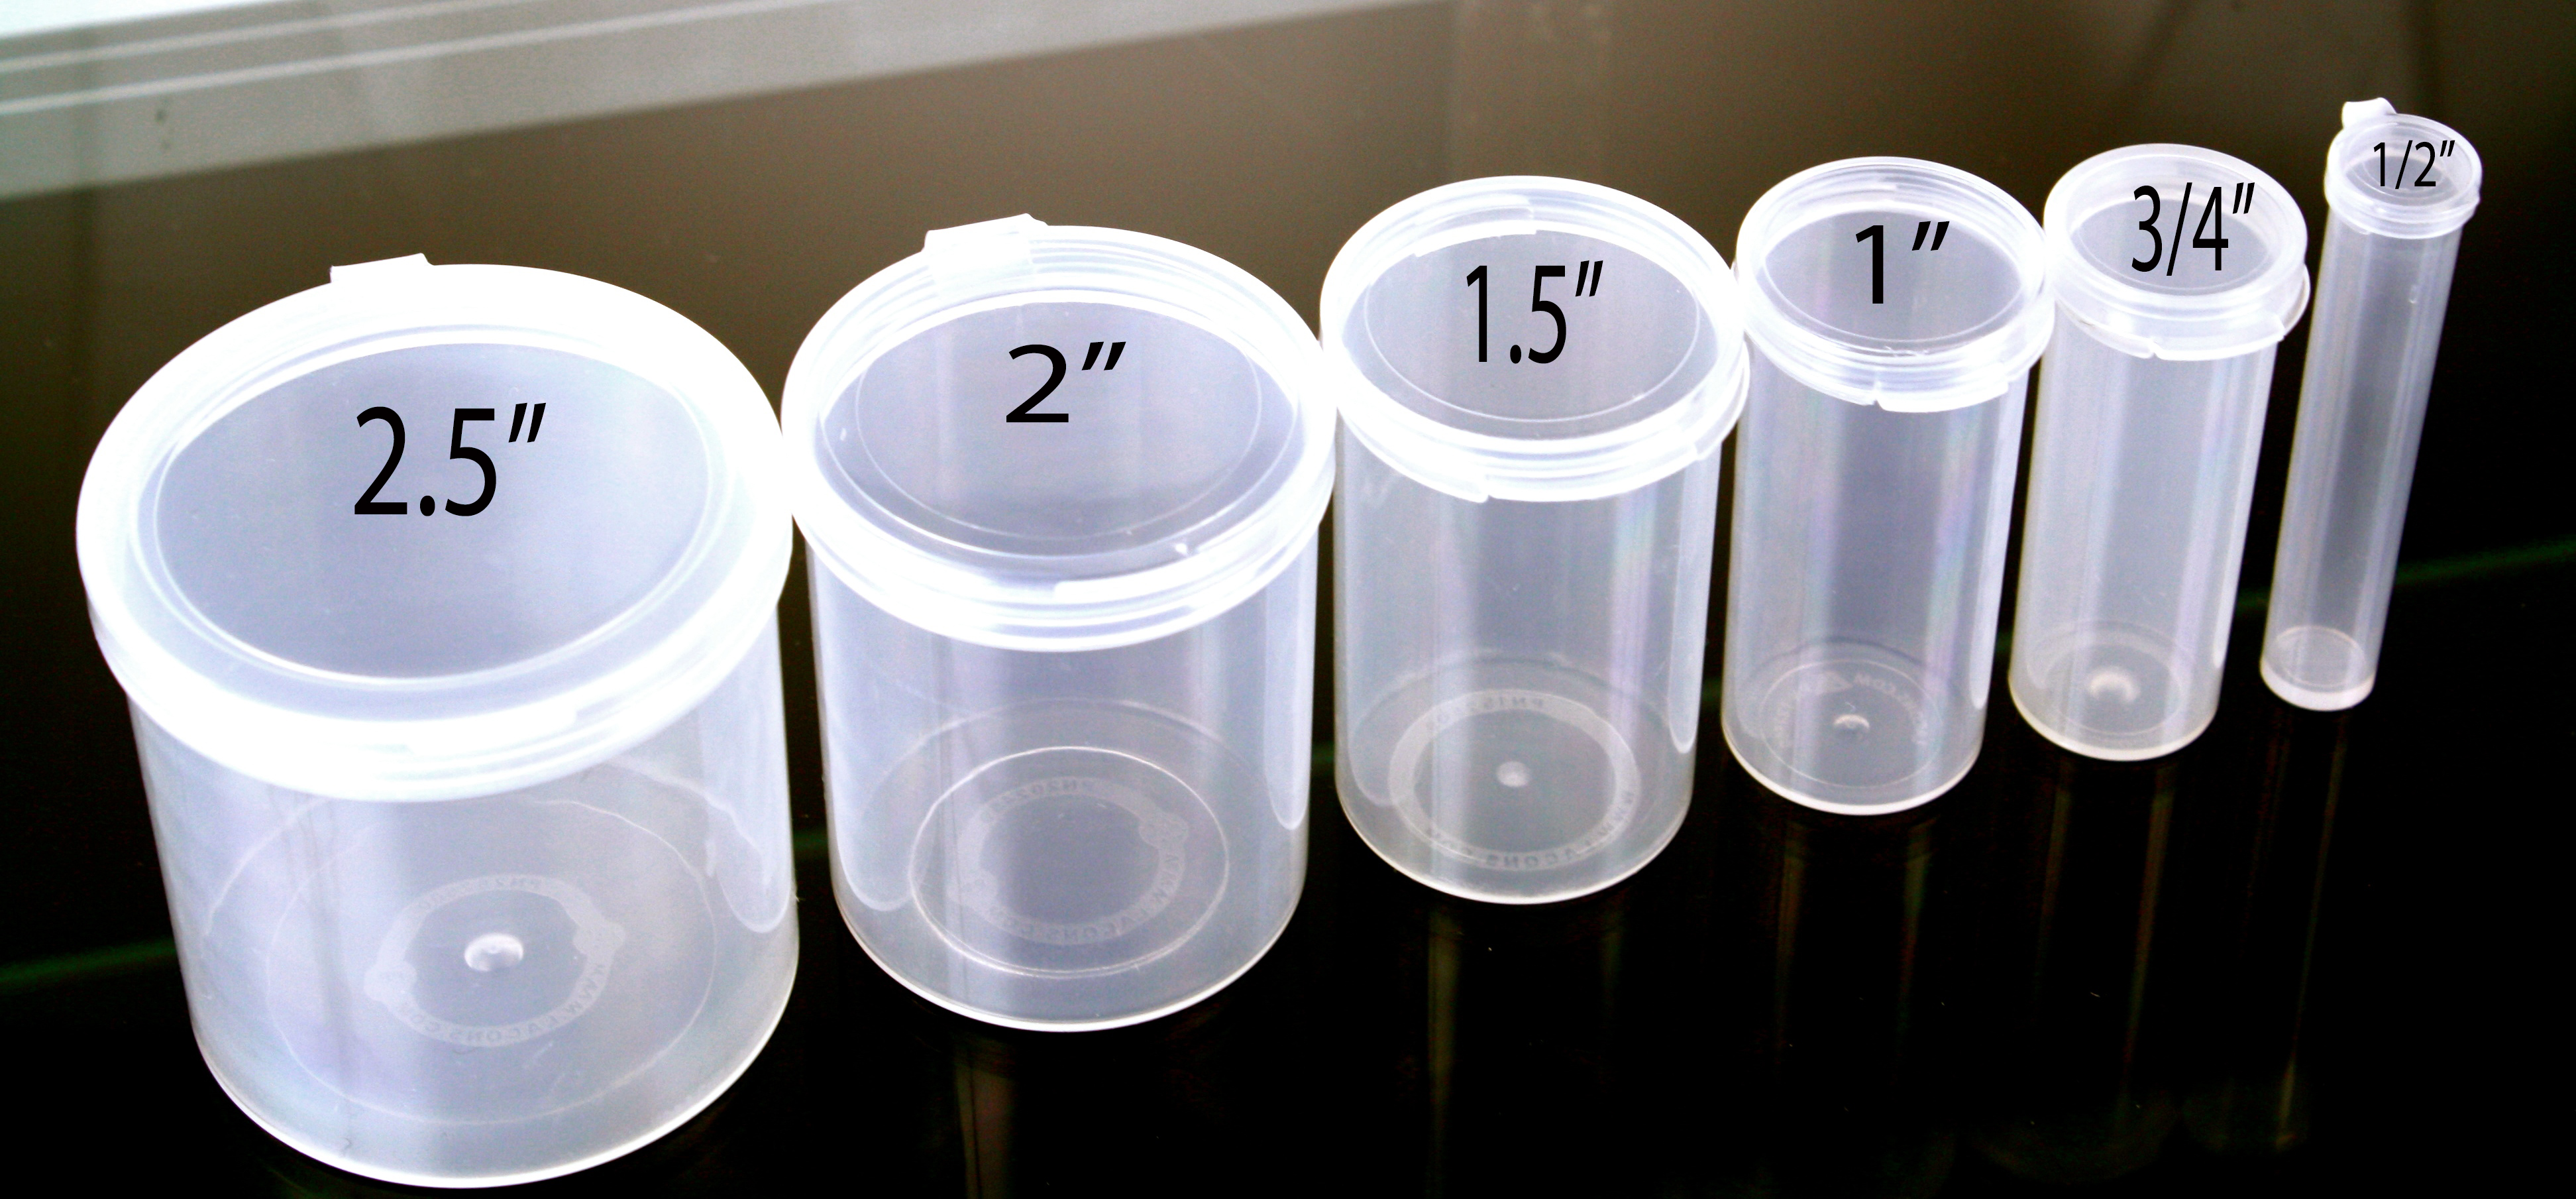 Image Result For Small Storage Containers With Lids